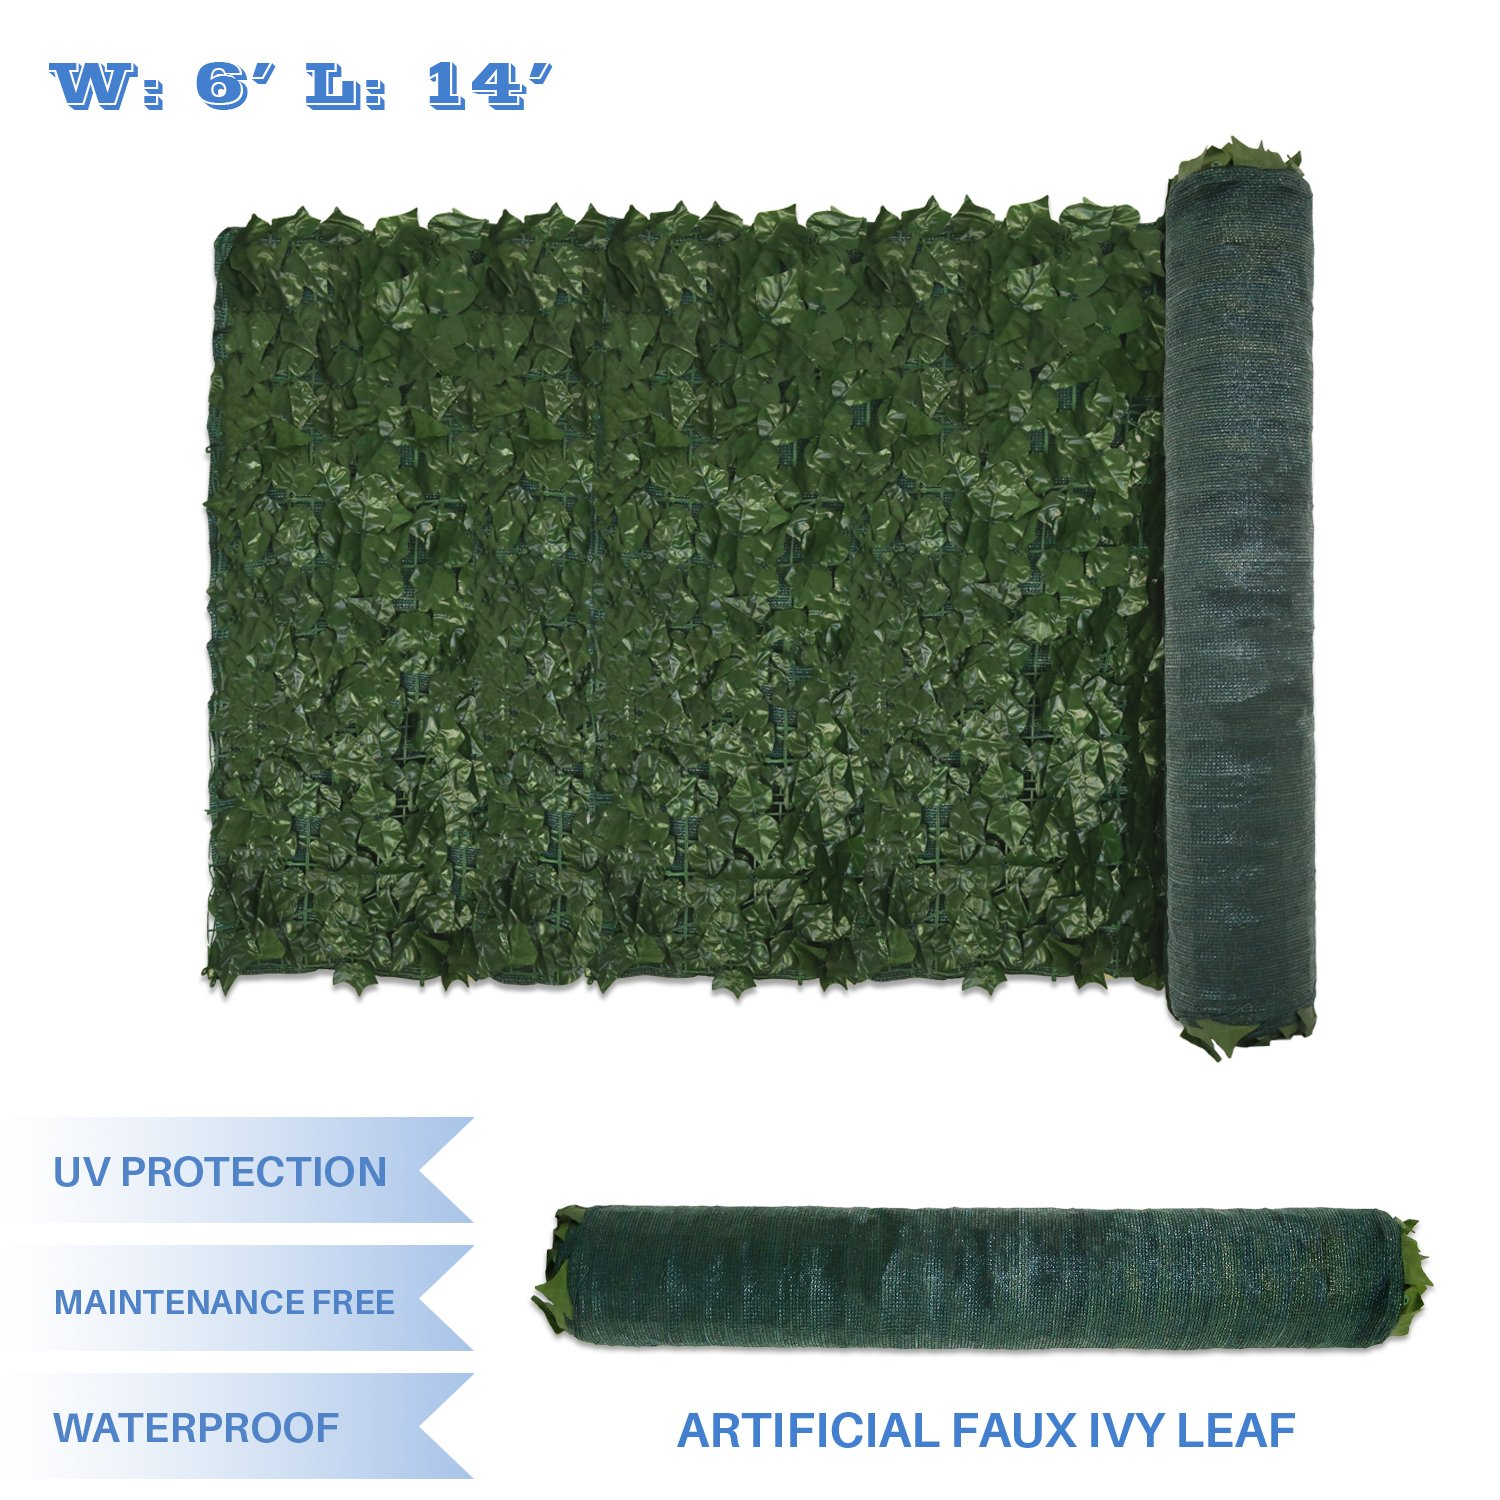 E&K Sunrise 6' x 14' Faux Ivy Privacy Fence Screen with Mesh Back-Artificial Leaf Vine Hedge Outdoor Decor-Garden Backyard Decoration Panels Fence Cover - Set of 1